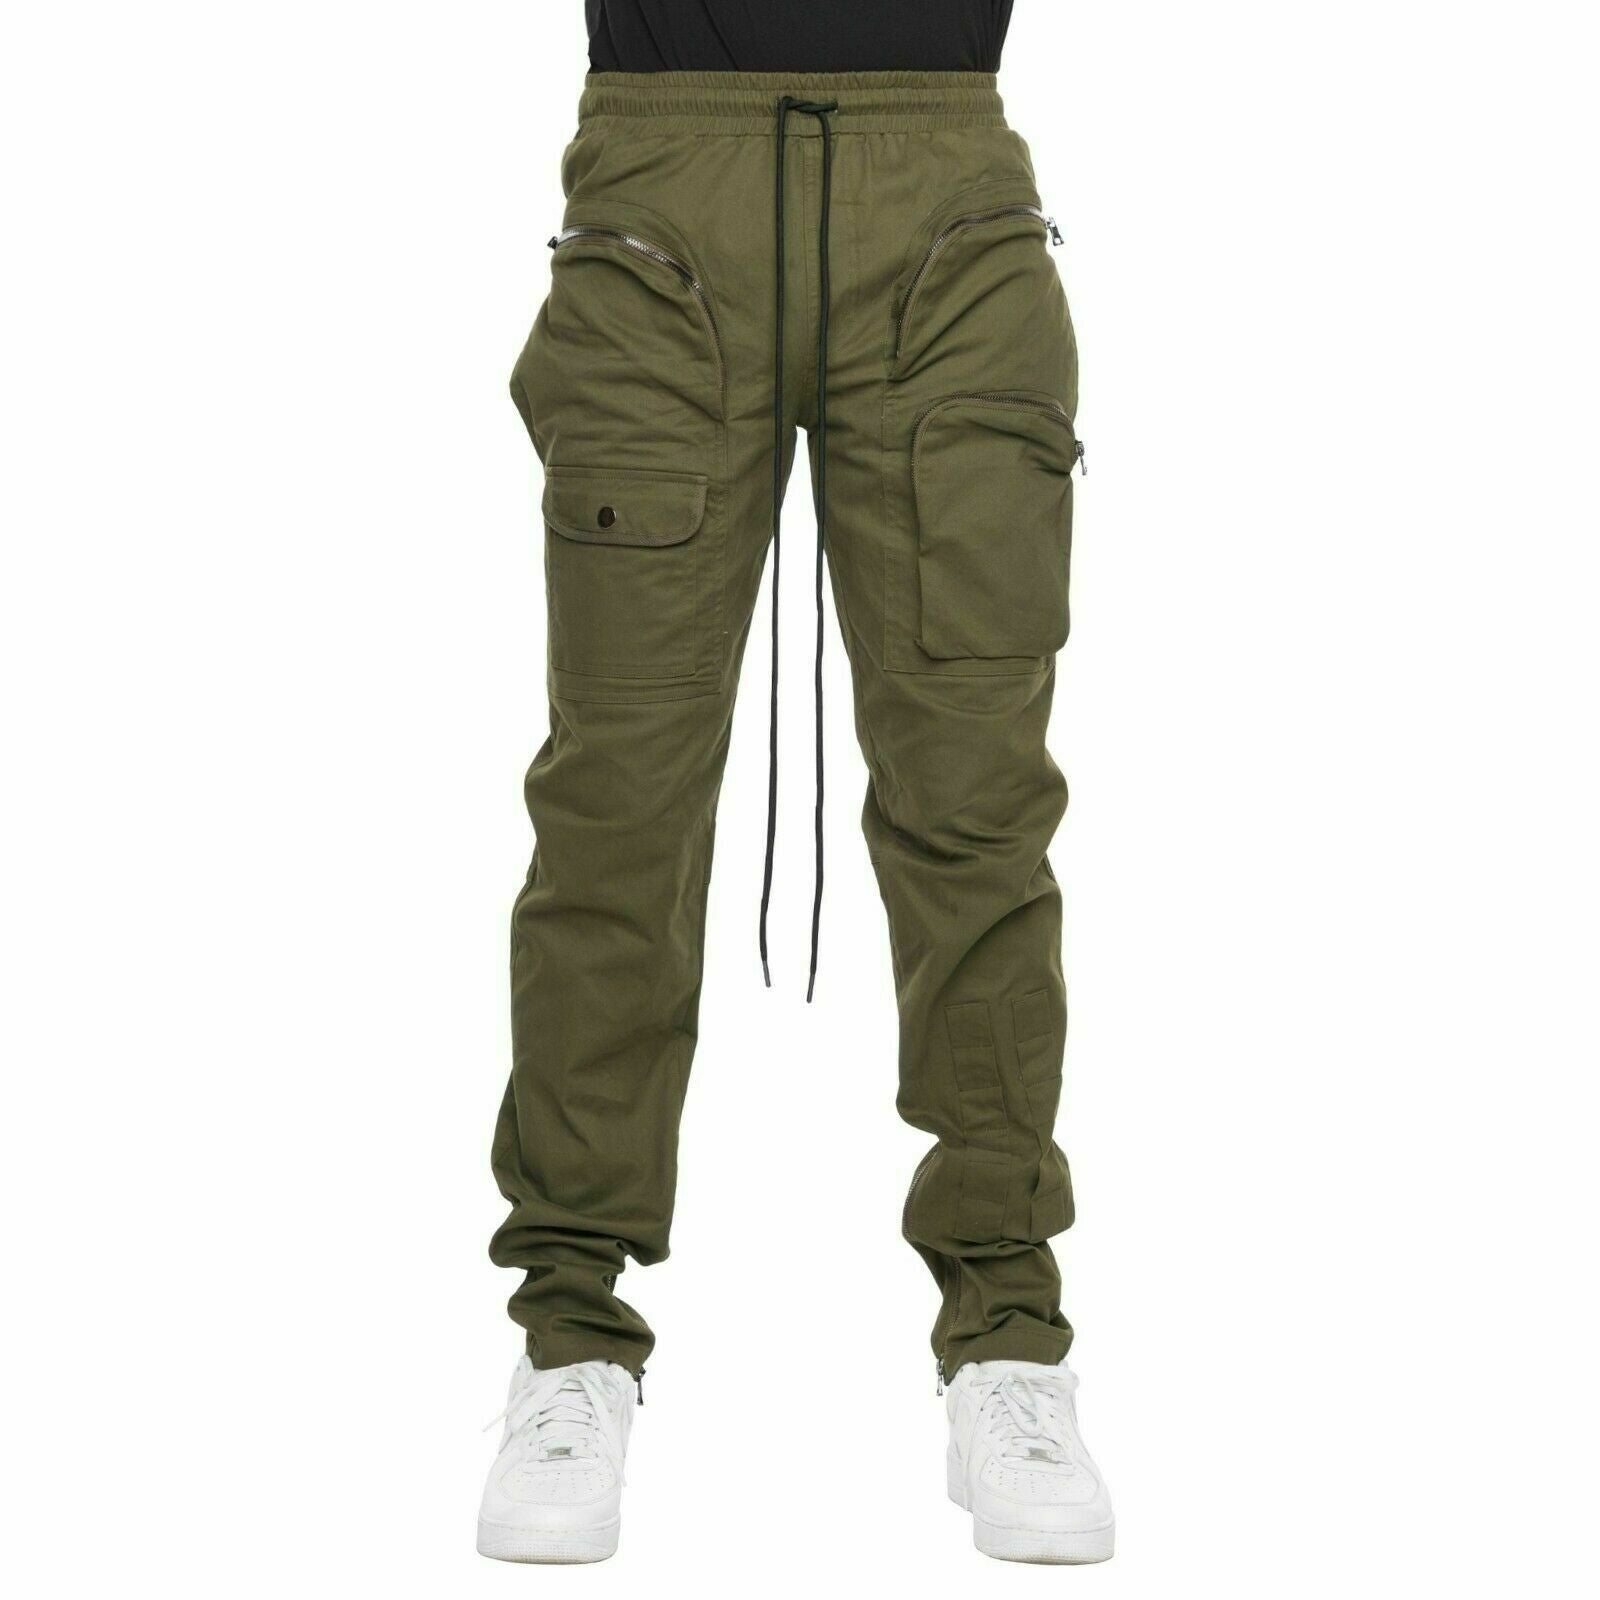 EPTM - Olive Army Cargo Pants